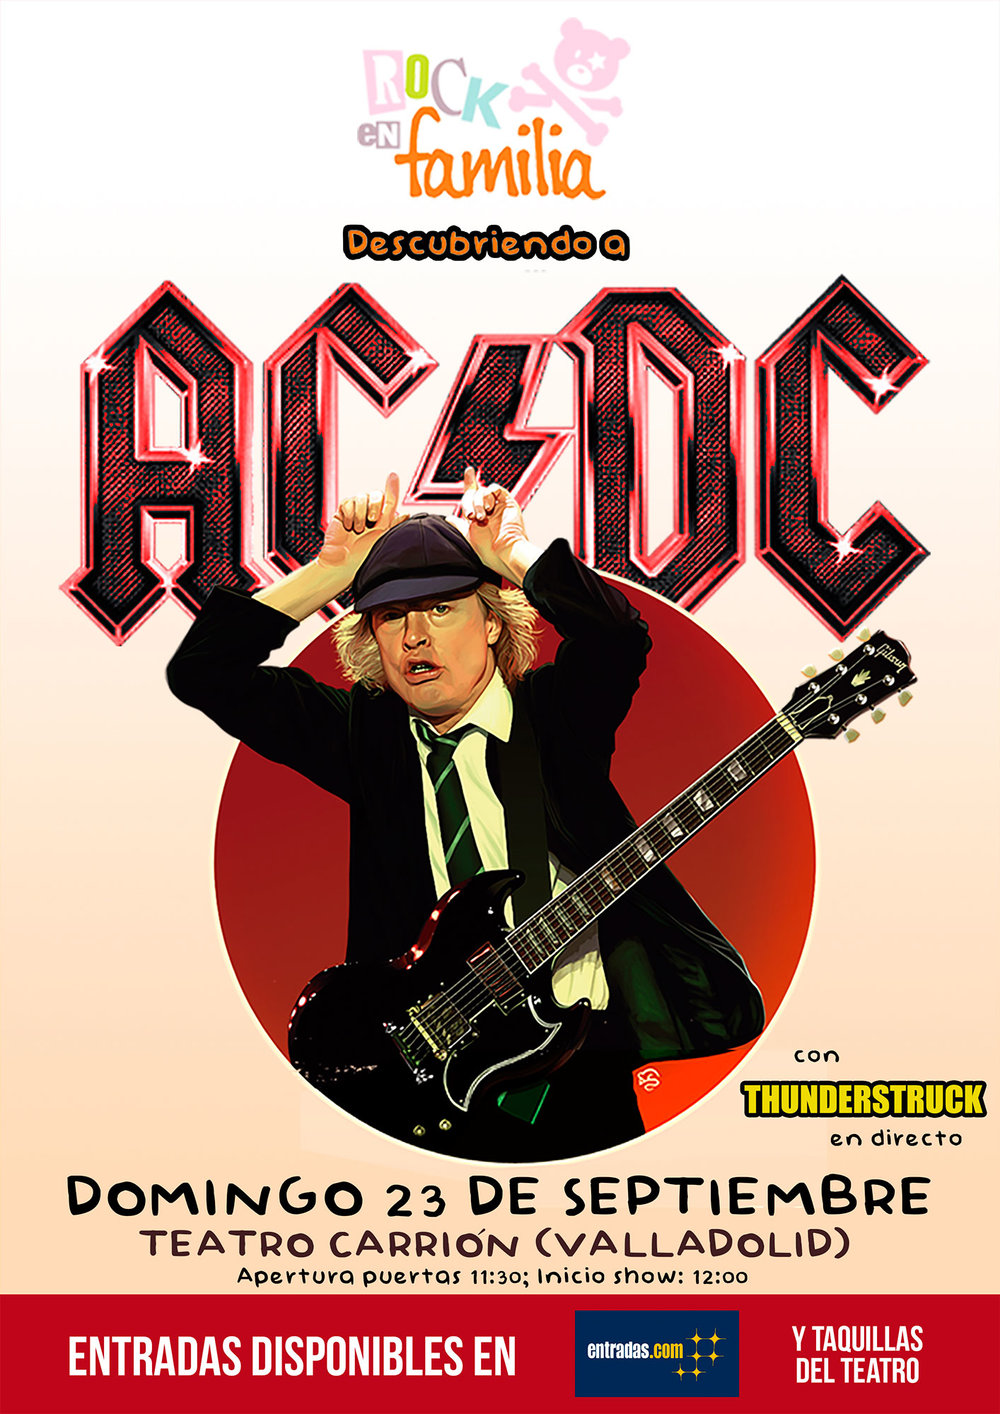 acdc-valladolid-carrion.jpg